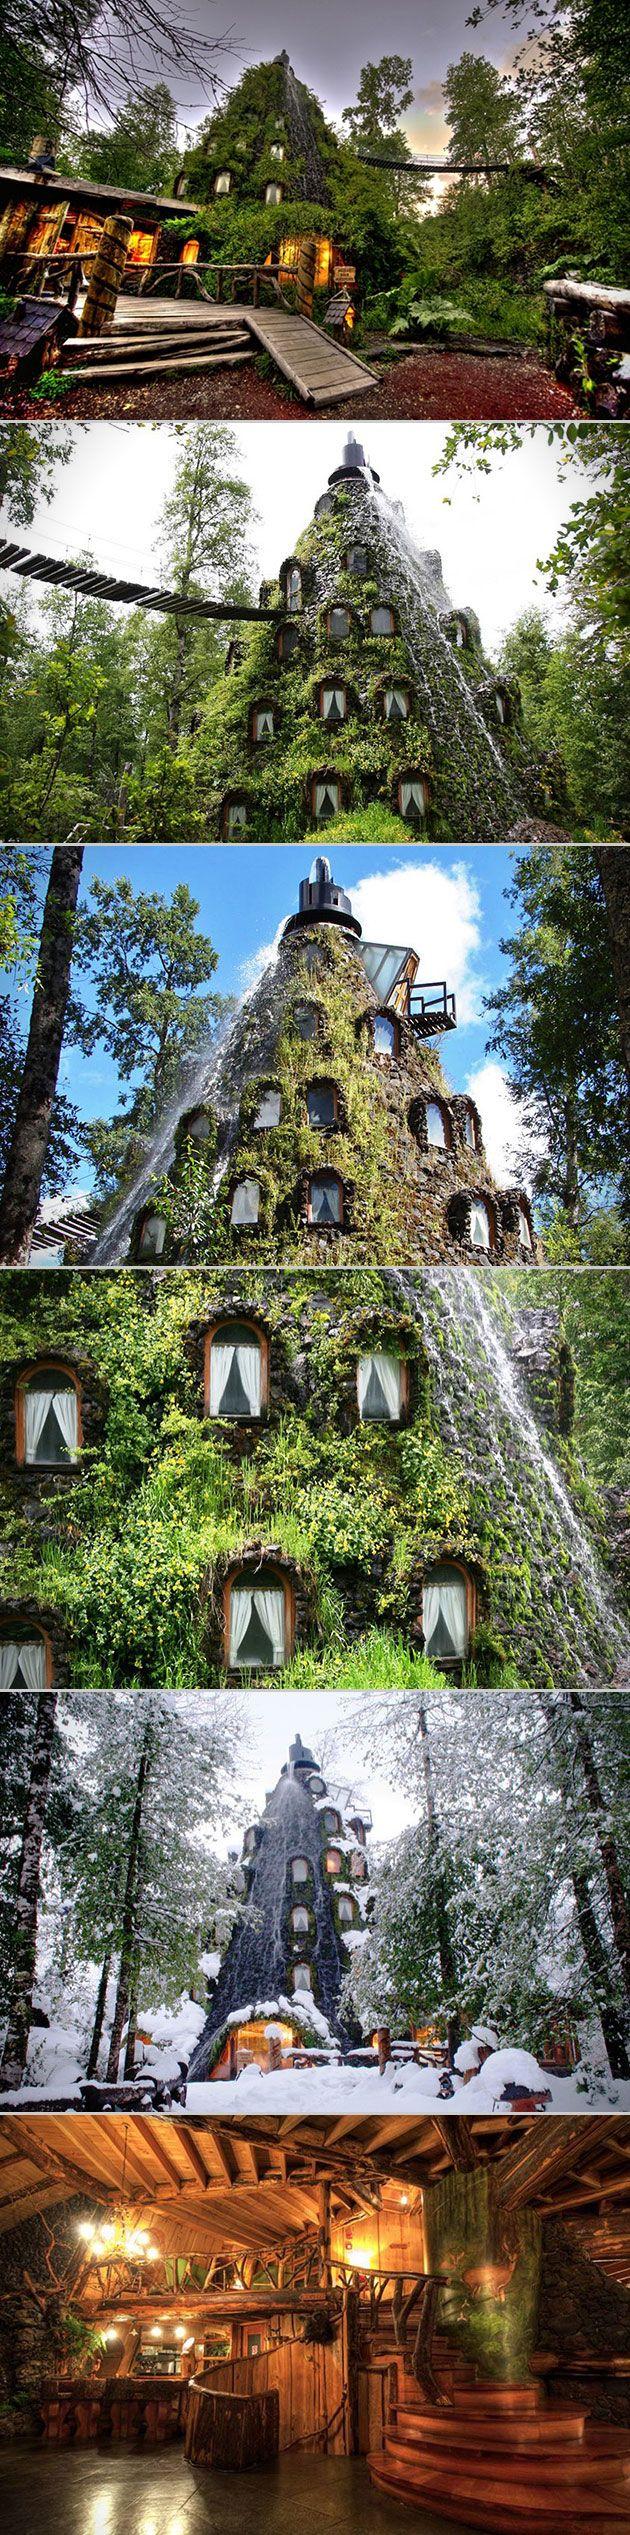 If the magic is gone between you and Motel 6, and that's entirely possible, perhaps it's time to revolutionize your lodging with a stay at the beautifully bizarre Montana Magica Hotel in Chile.   This is a four-star hotel that's shaped like a mountain, with plants, moss and vines covering the exterior. But here's the kicker: It frequently erupts and spews water down its sides.